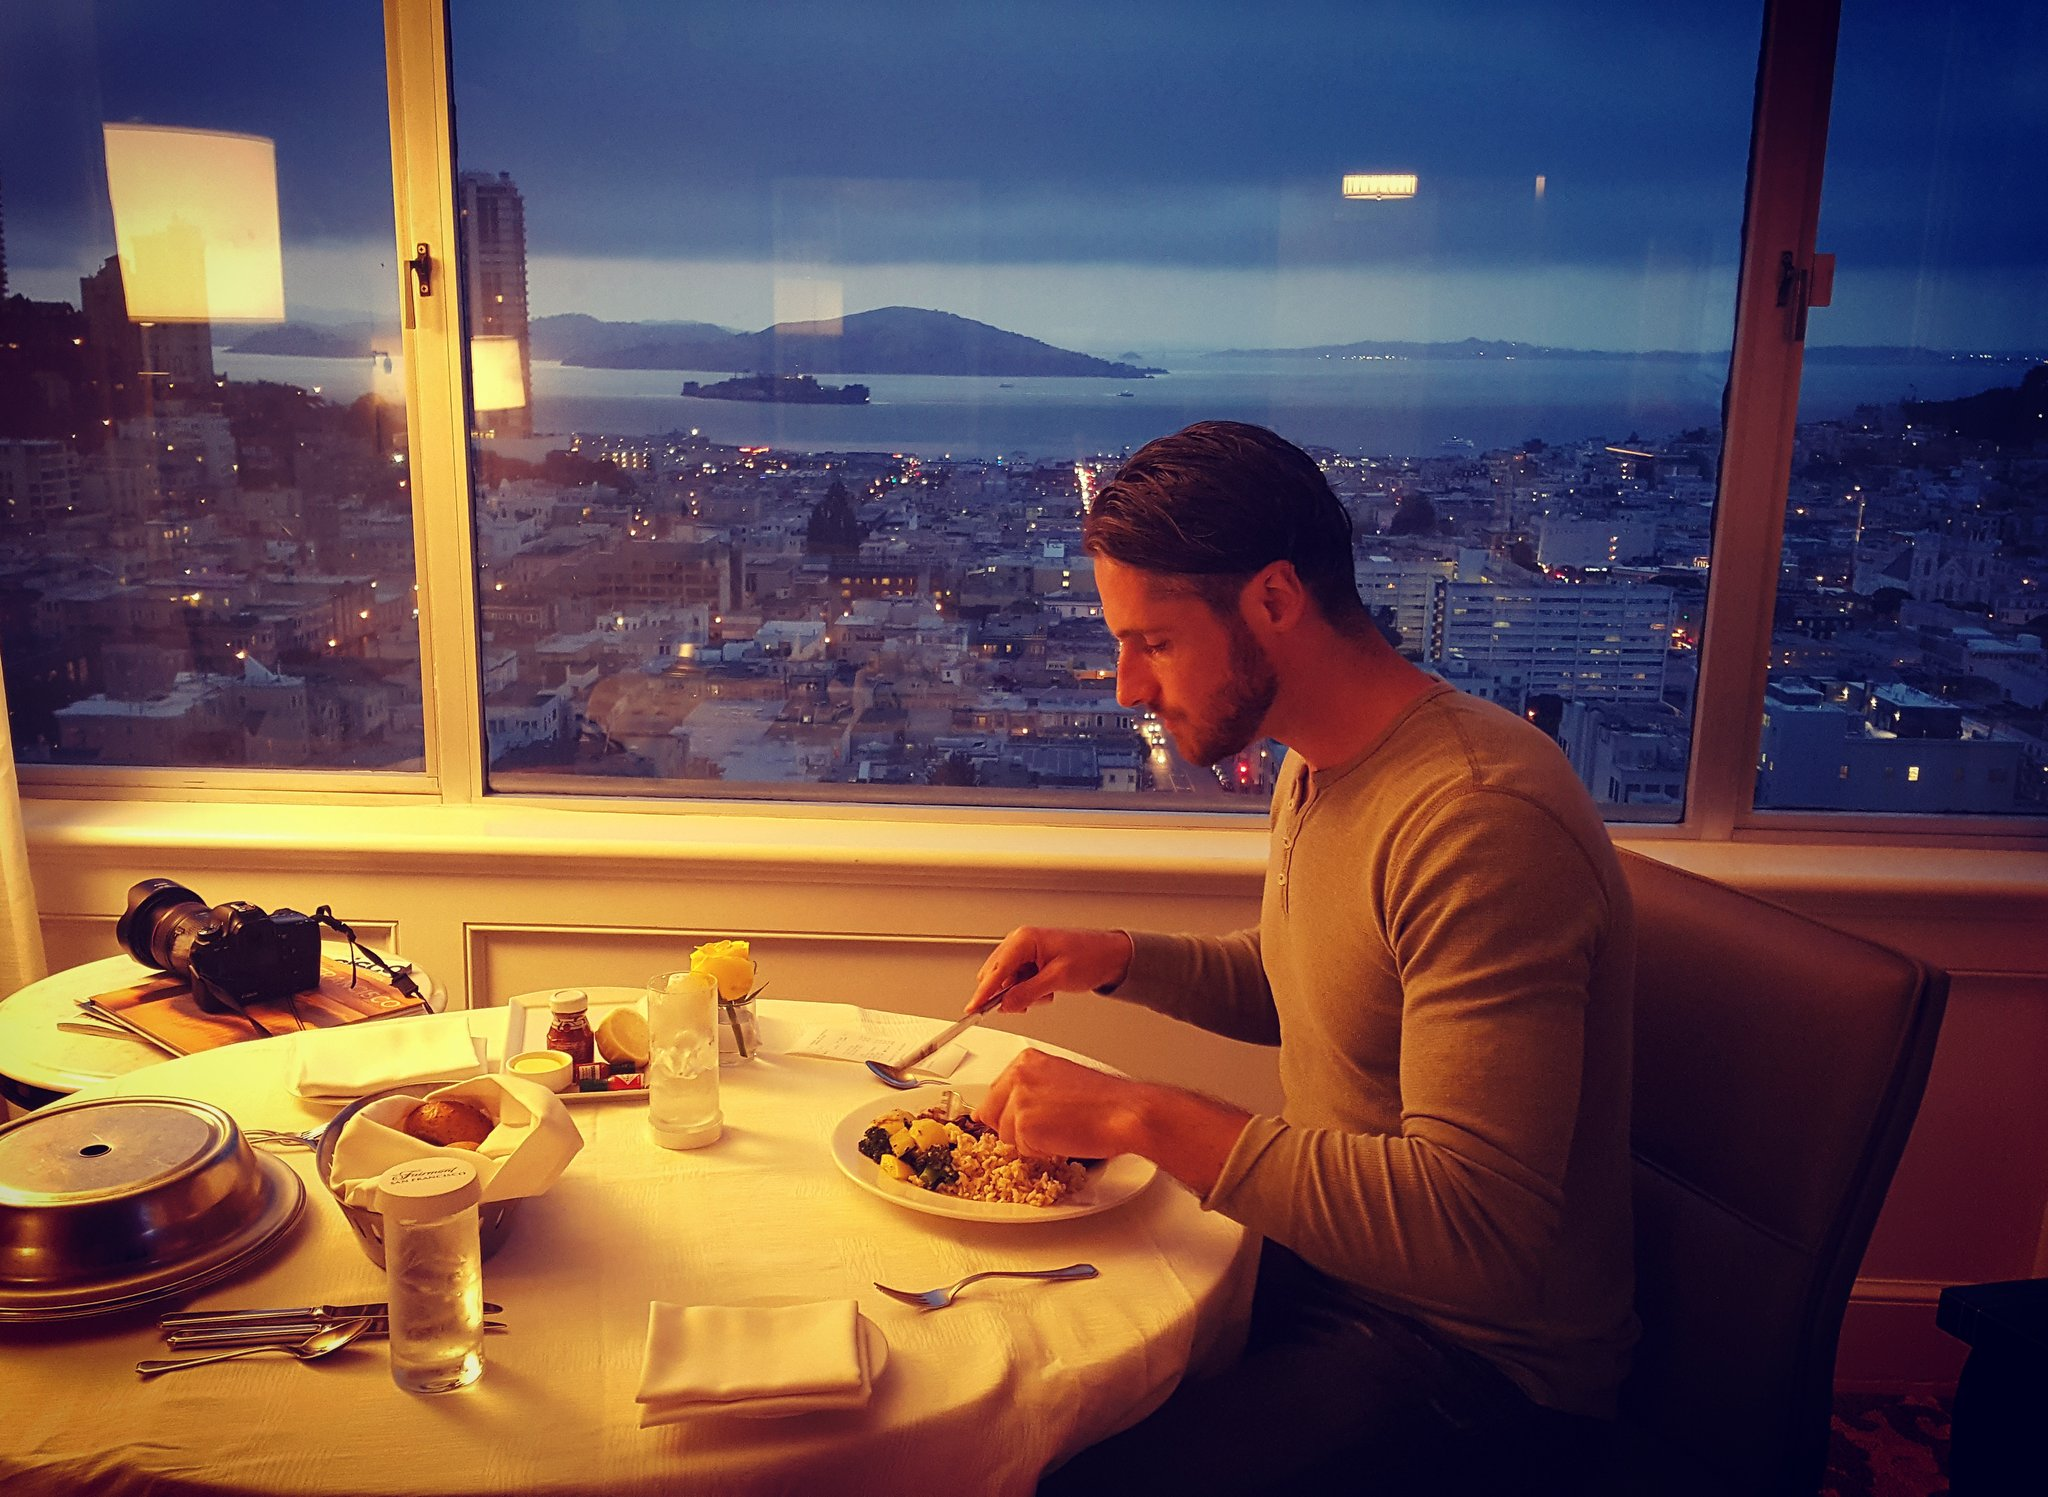 Roomservice at night with the best view ever 😍🍴🌒 @ Fairmont Hotel San Francisco  #Alcatraz https://t.co/PCRRaTN5ql